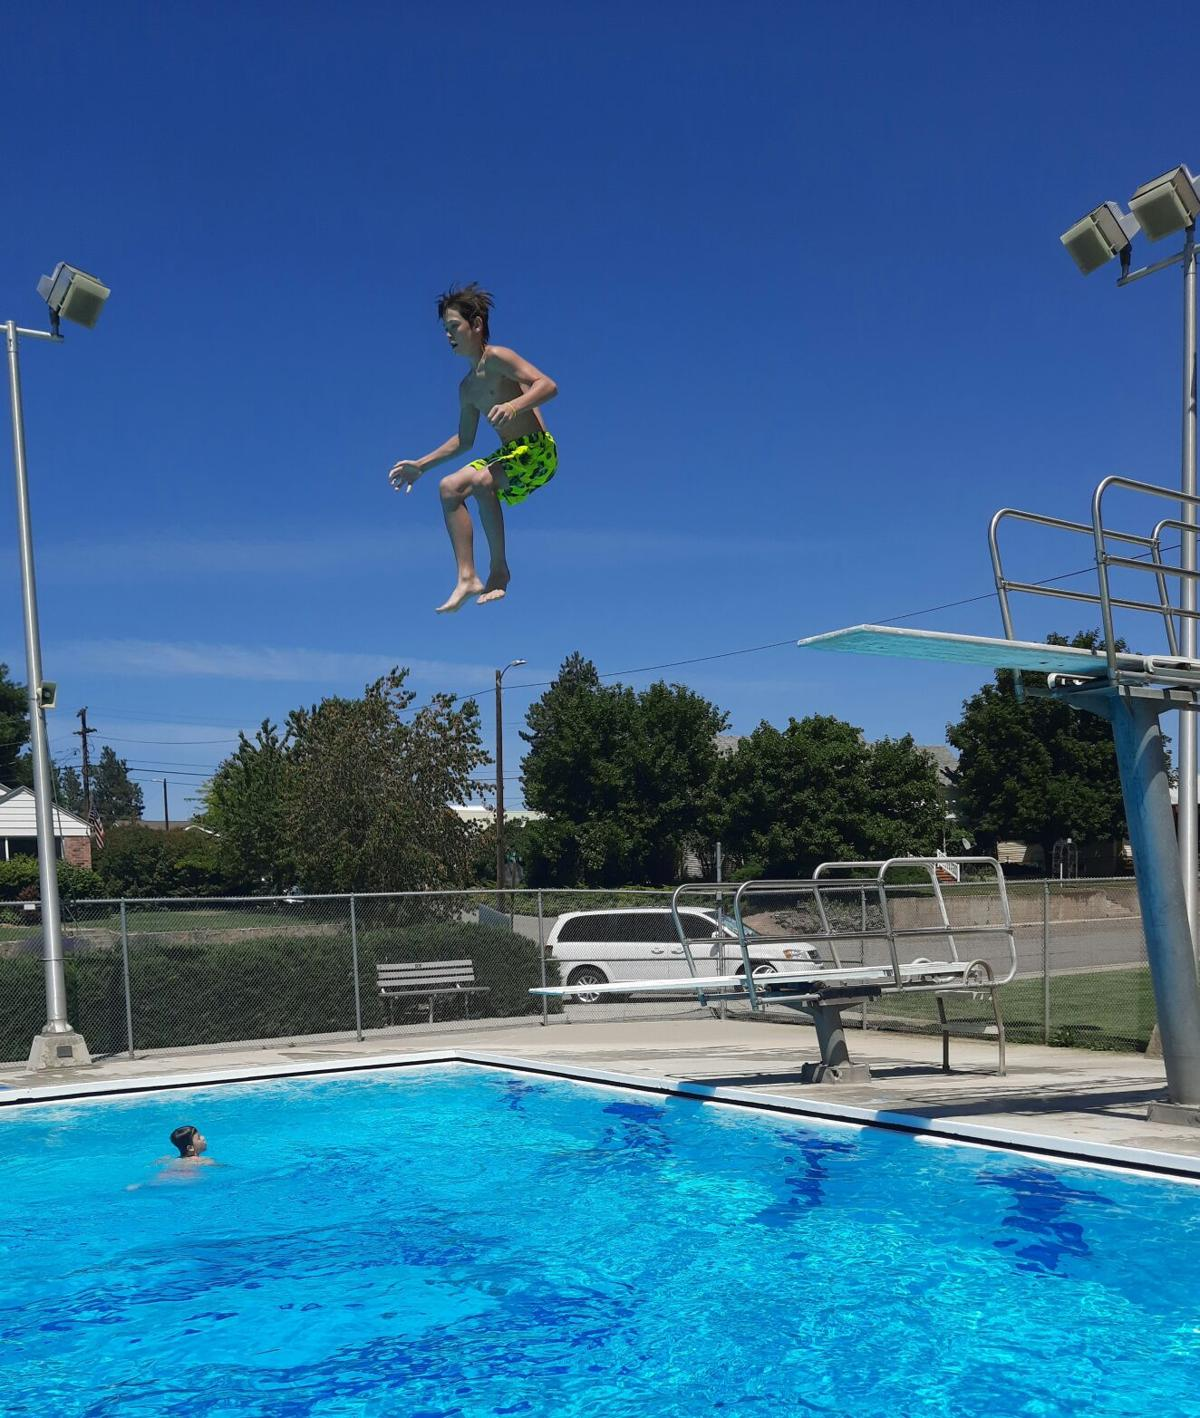 Wyatt Williams leaps from the high dive, enjoying the reopening of the Waterville Pool.jpg